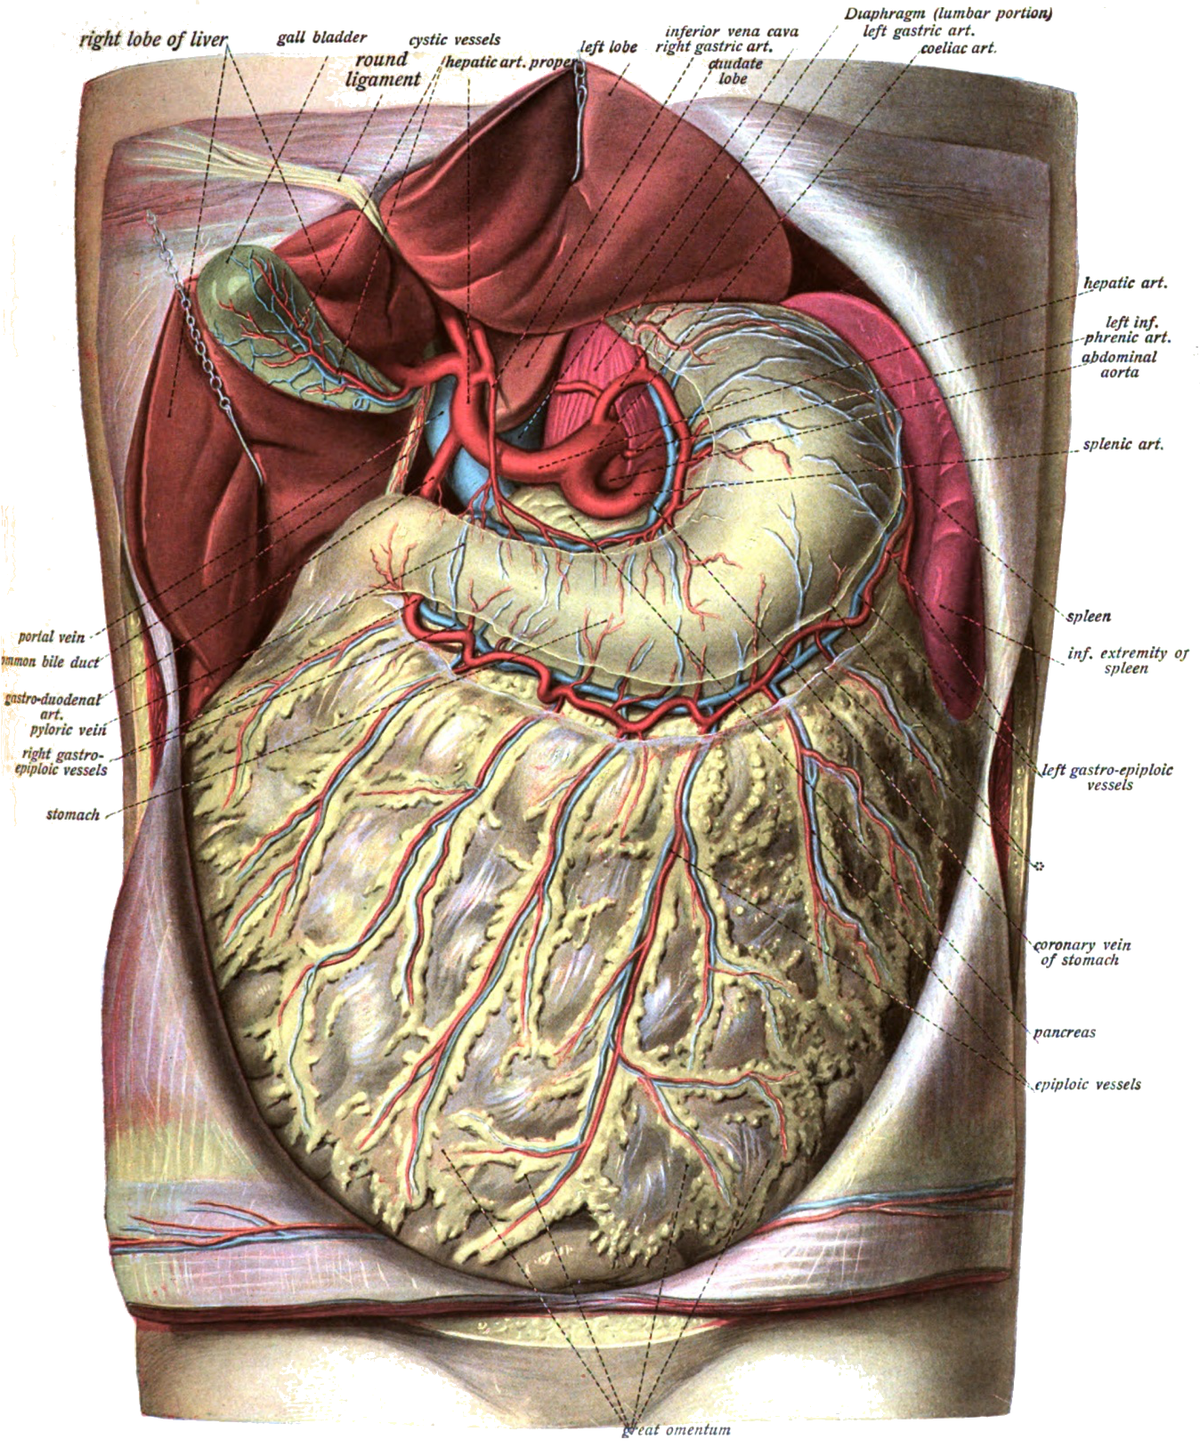 Greater omentum - Wikipedia